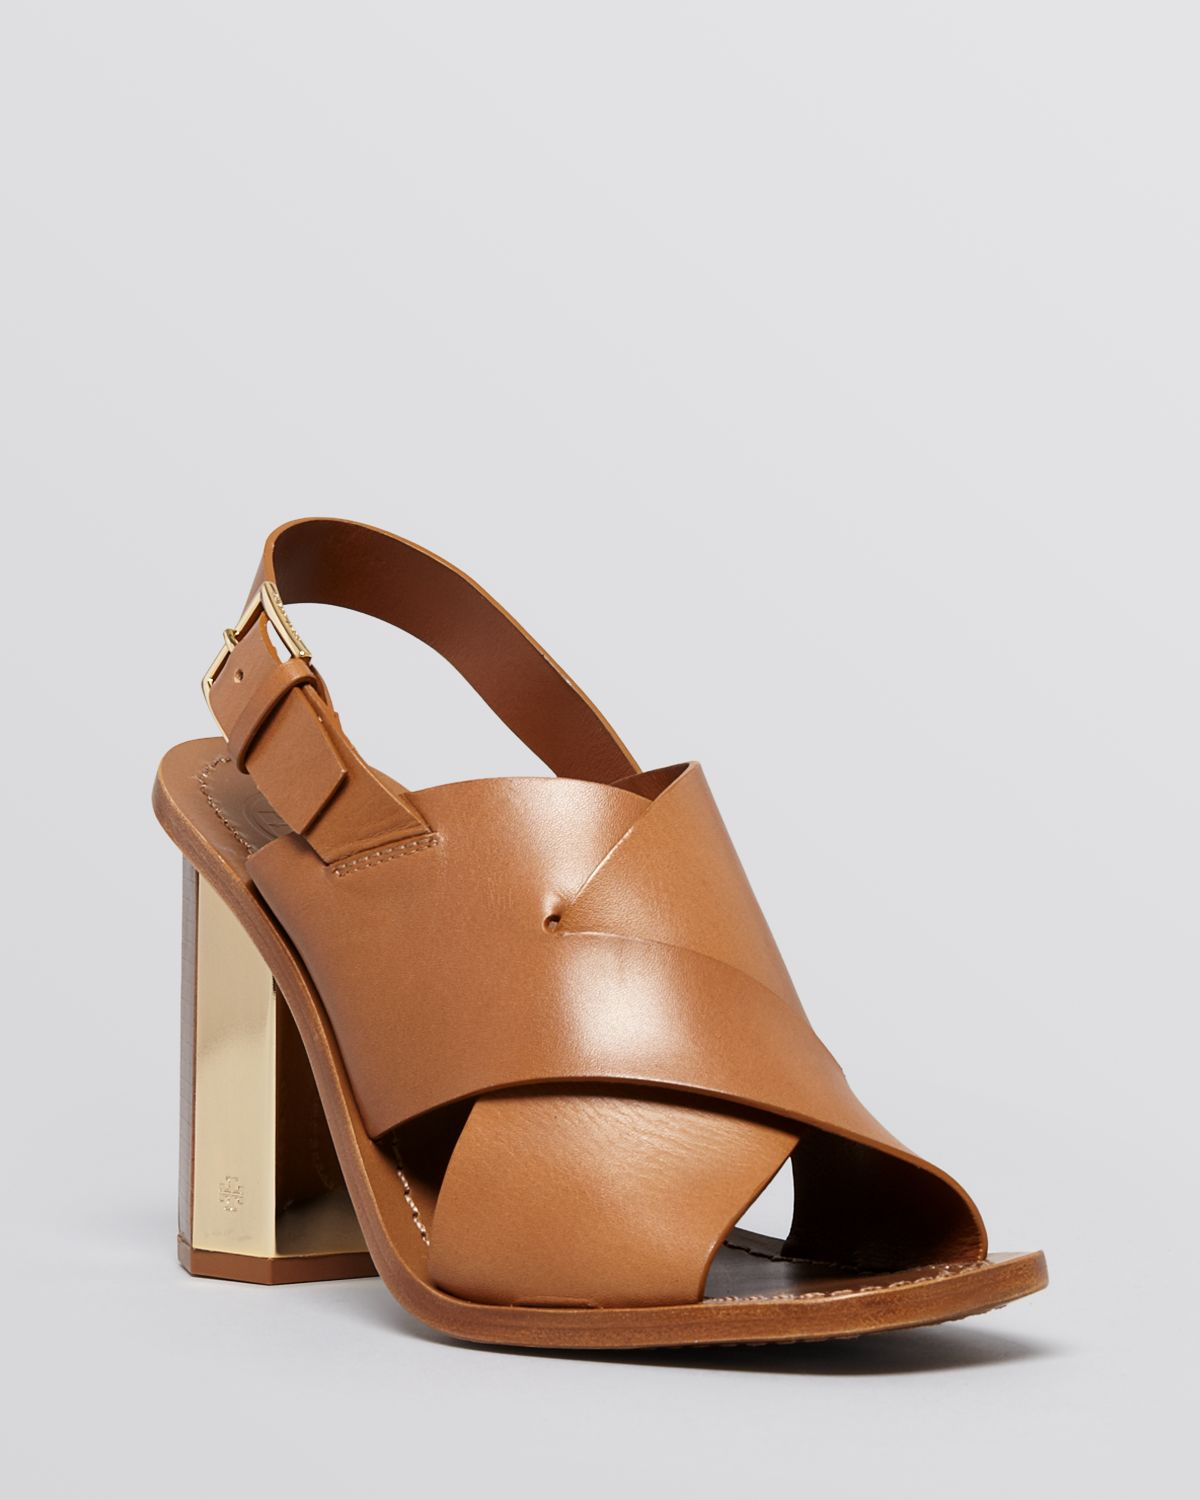 16c92dde09a Tory Burch Open Toe Slingback Sandals - Bleecker High Heel in Brown ...